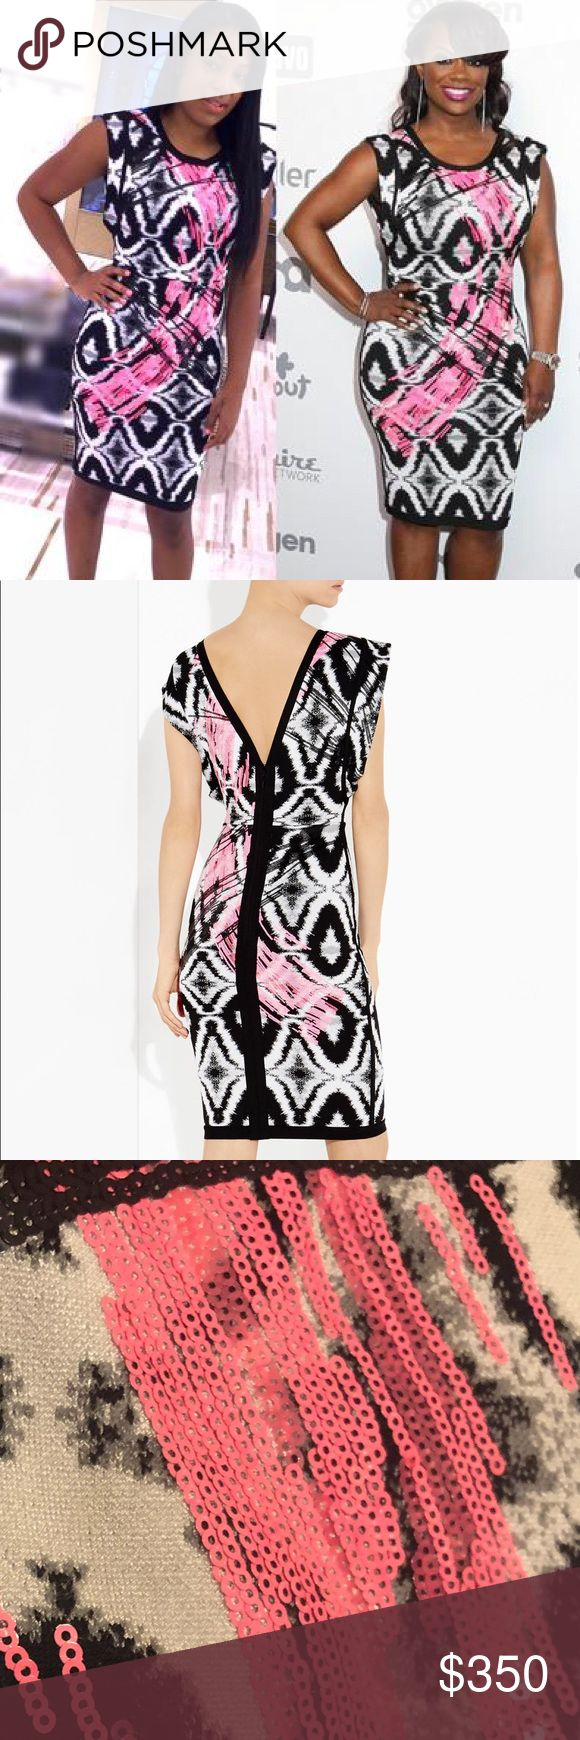 "Herve Leger Sean Jacquard Sequin Detail Dress XS S From the Spring 2015 Runway Collection Retail price $1,990.00 Beautiful Herve Leger black & white ikat-print jacquard dress w/ pink & black contrast sequined brushstroke detail Round neckline Flutter cap sleeves Nips in at natural waist Straight skirt; contrast trimmed straight hem Curve-skimming body-con silhouette Center back zip closure Approx Laid Flat Measurements: Bust: 14.5"" Waist: 11.5"" Hip: 14.5"" Overall Legnth: 36"" Excellent…"